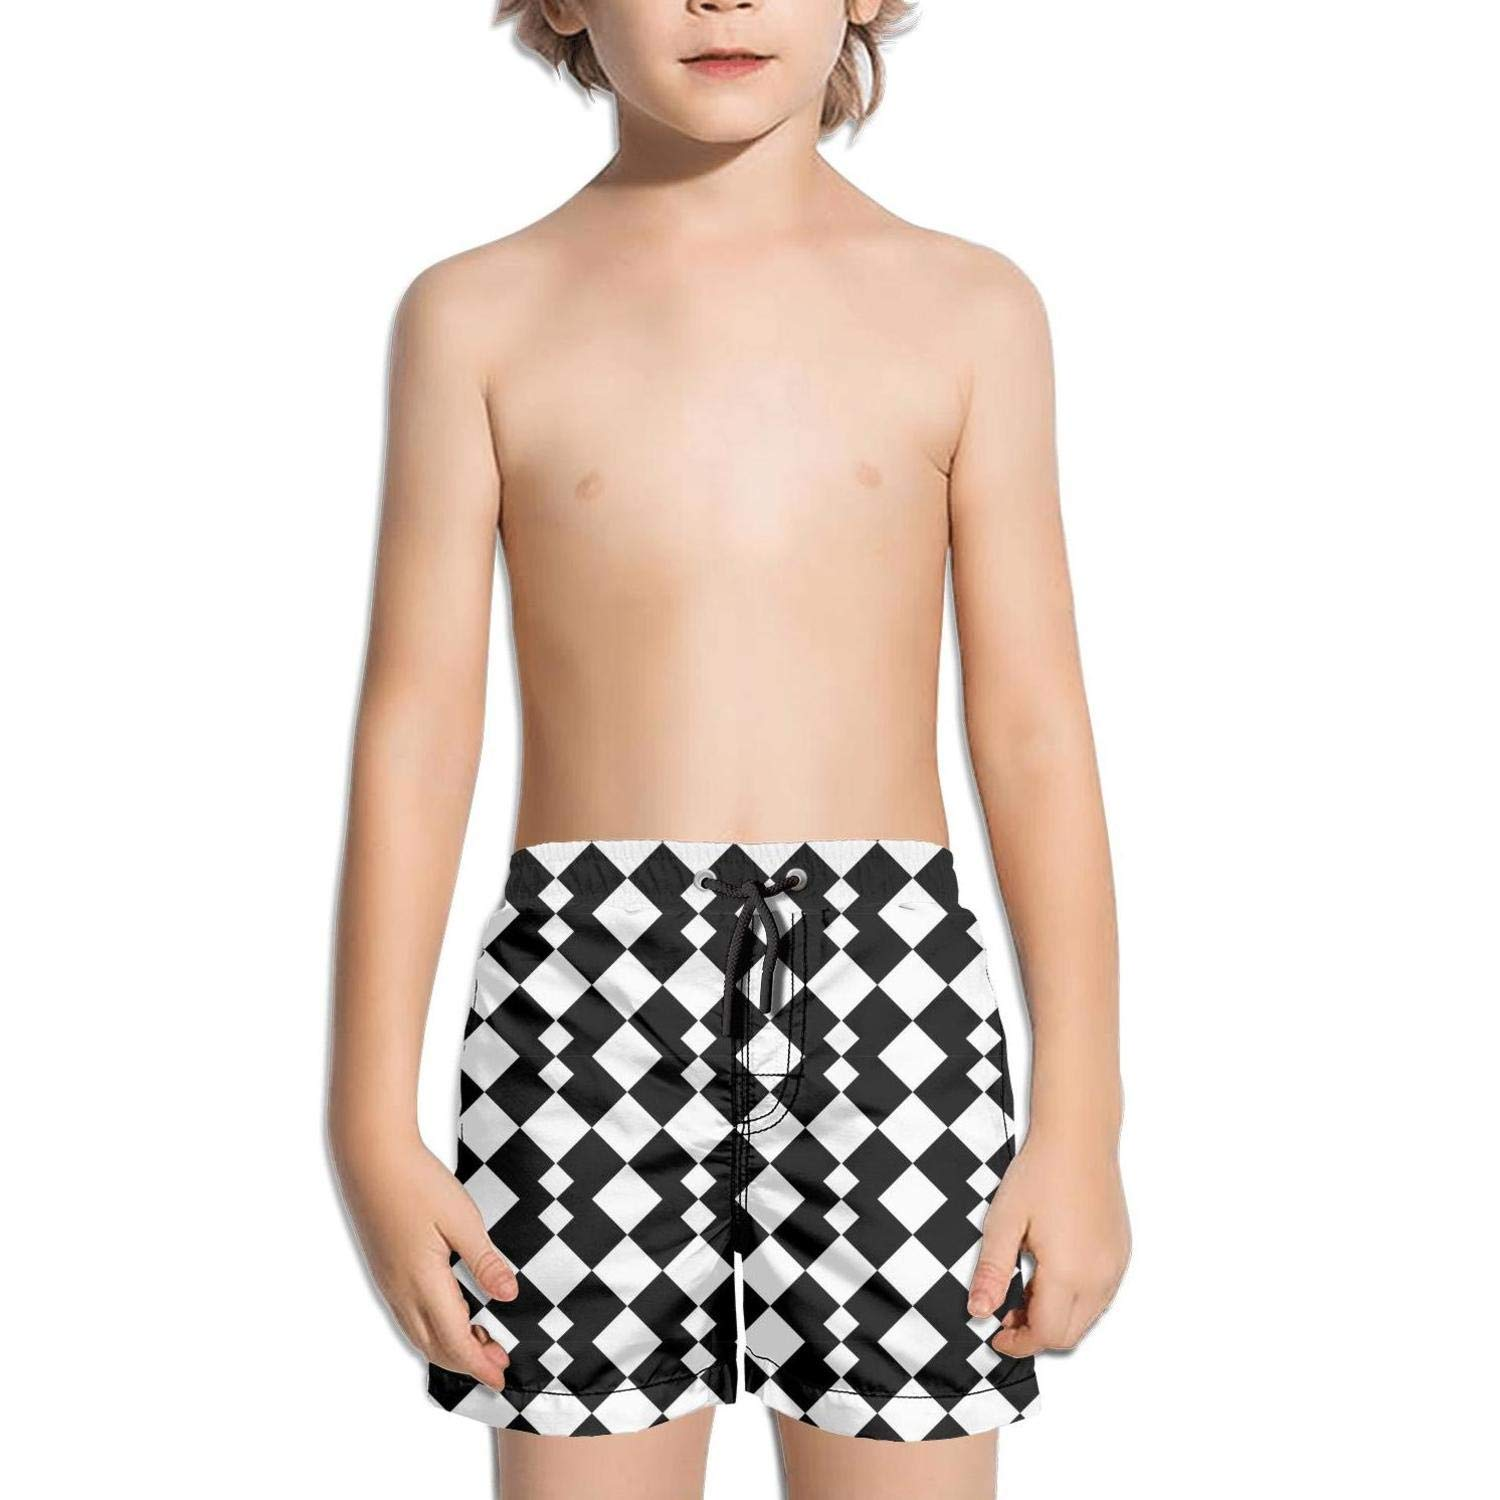 uejnnbc Black and White Vector Abstract Geometric Shapes Waterproof Solid Solid Board Swimming Trunks Shorts